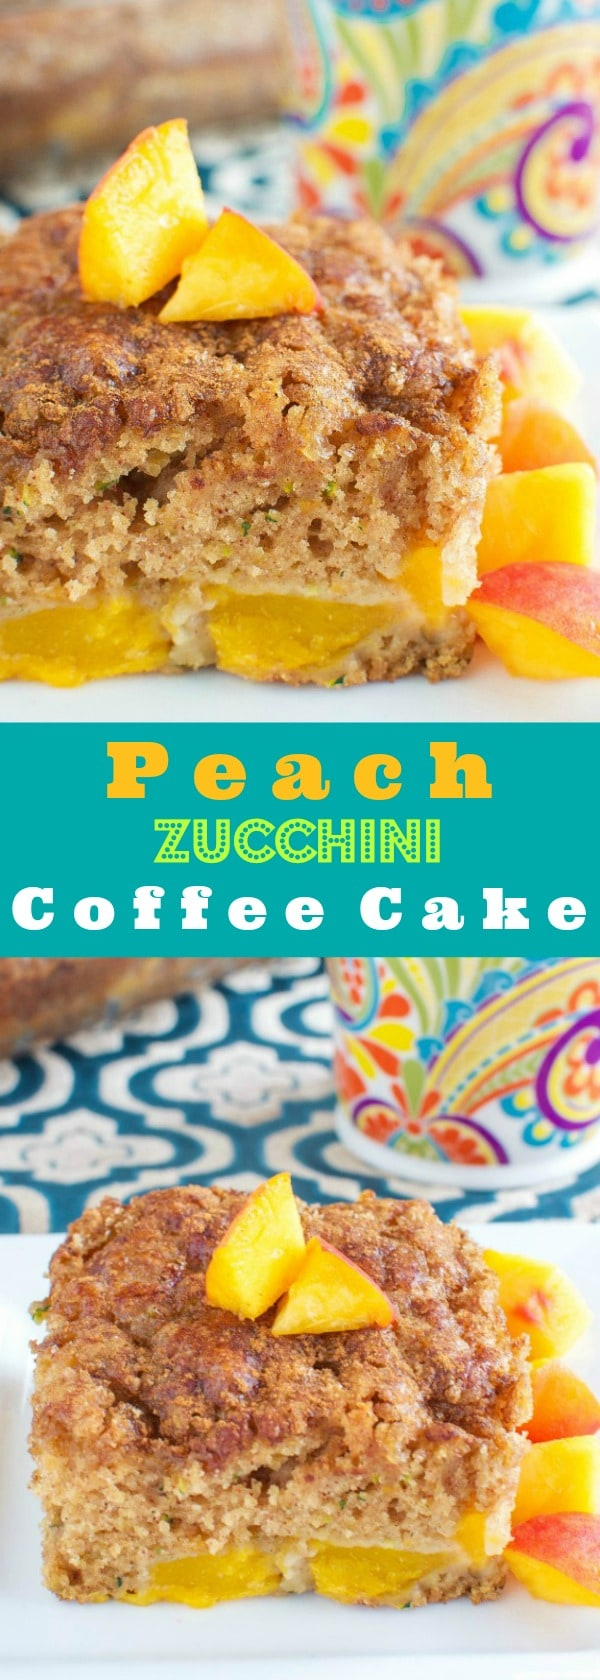 Peach Zucchini Coffee Cake with a Crunchy Brown Sugar Cinnamon Topping!